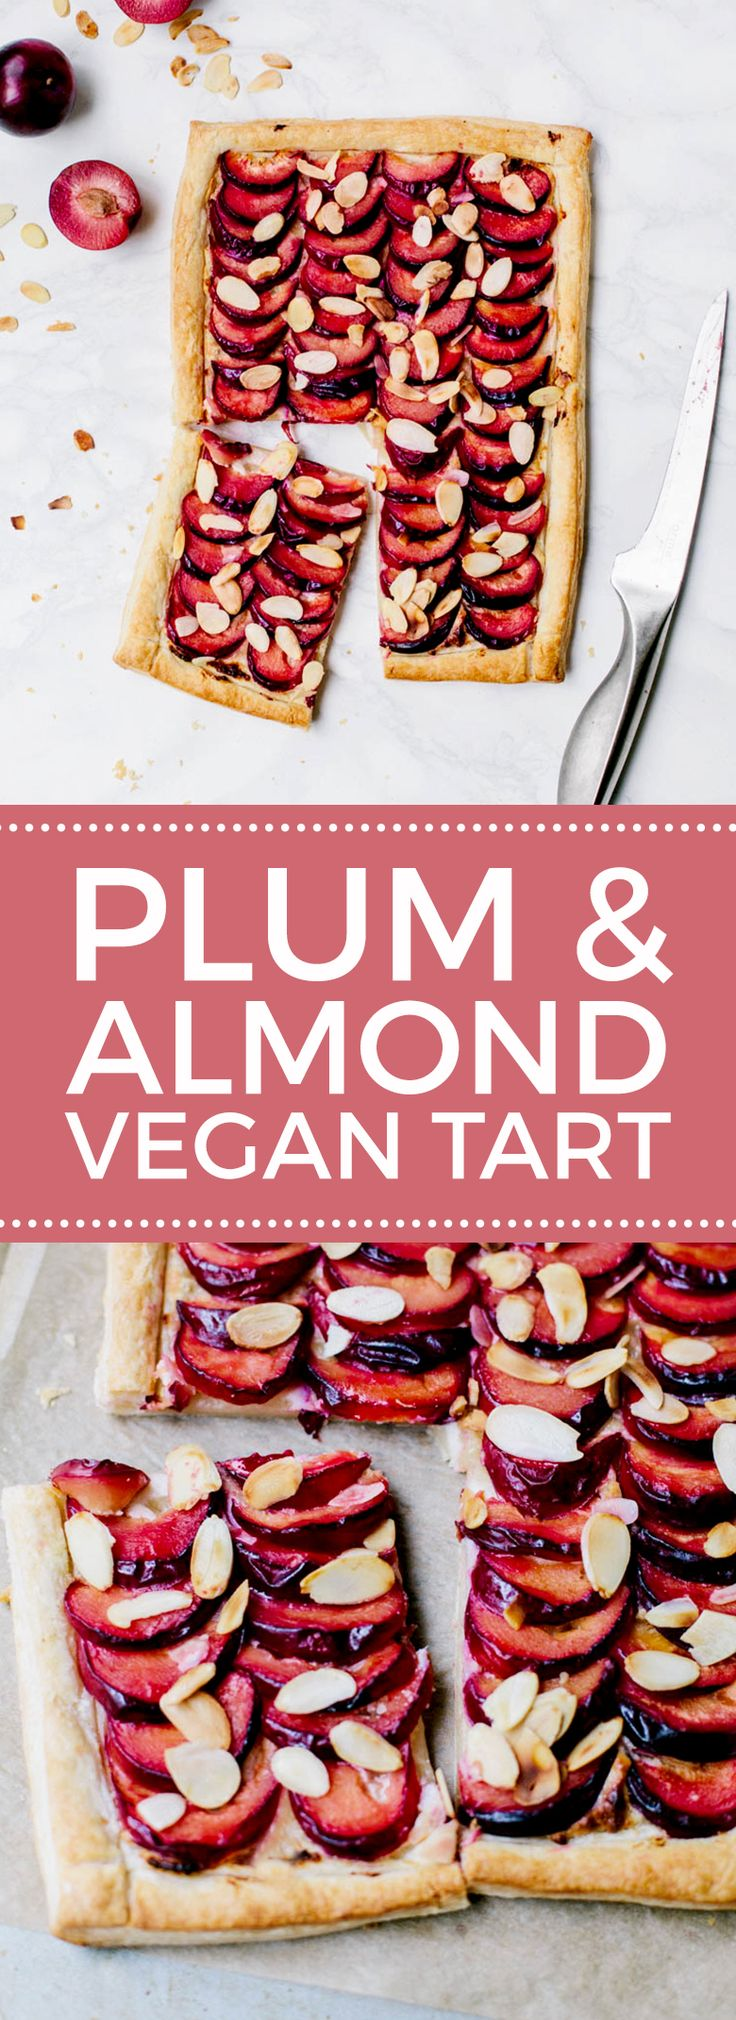 Plum & Almond Tart #Vegan